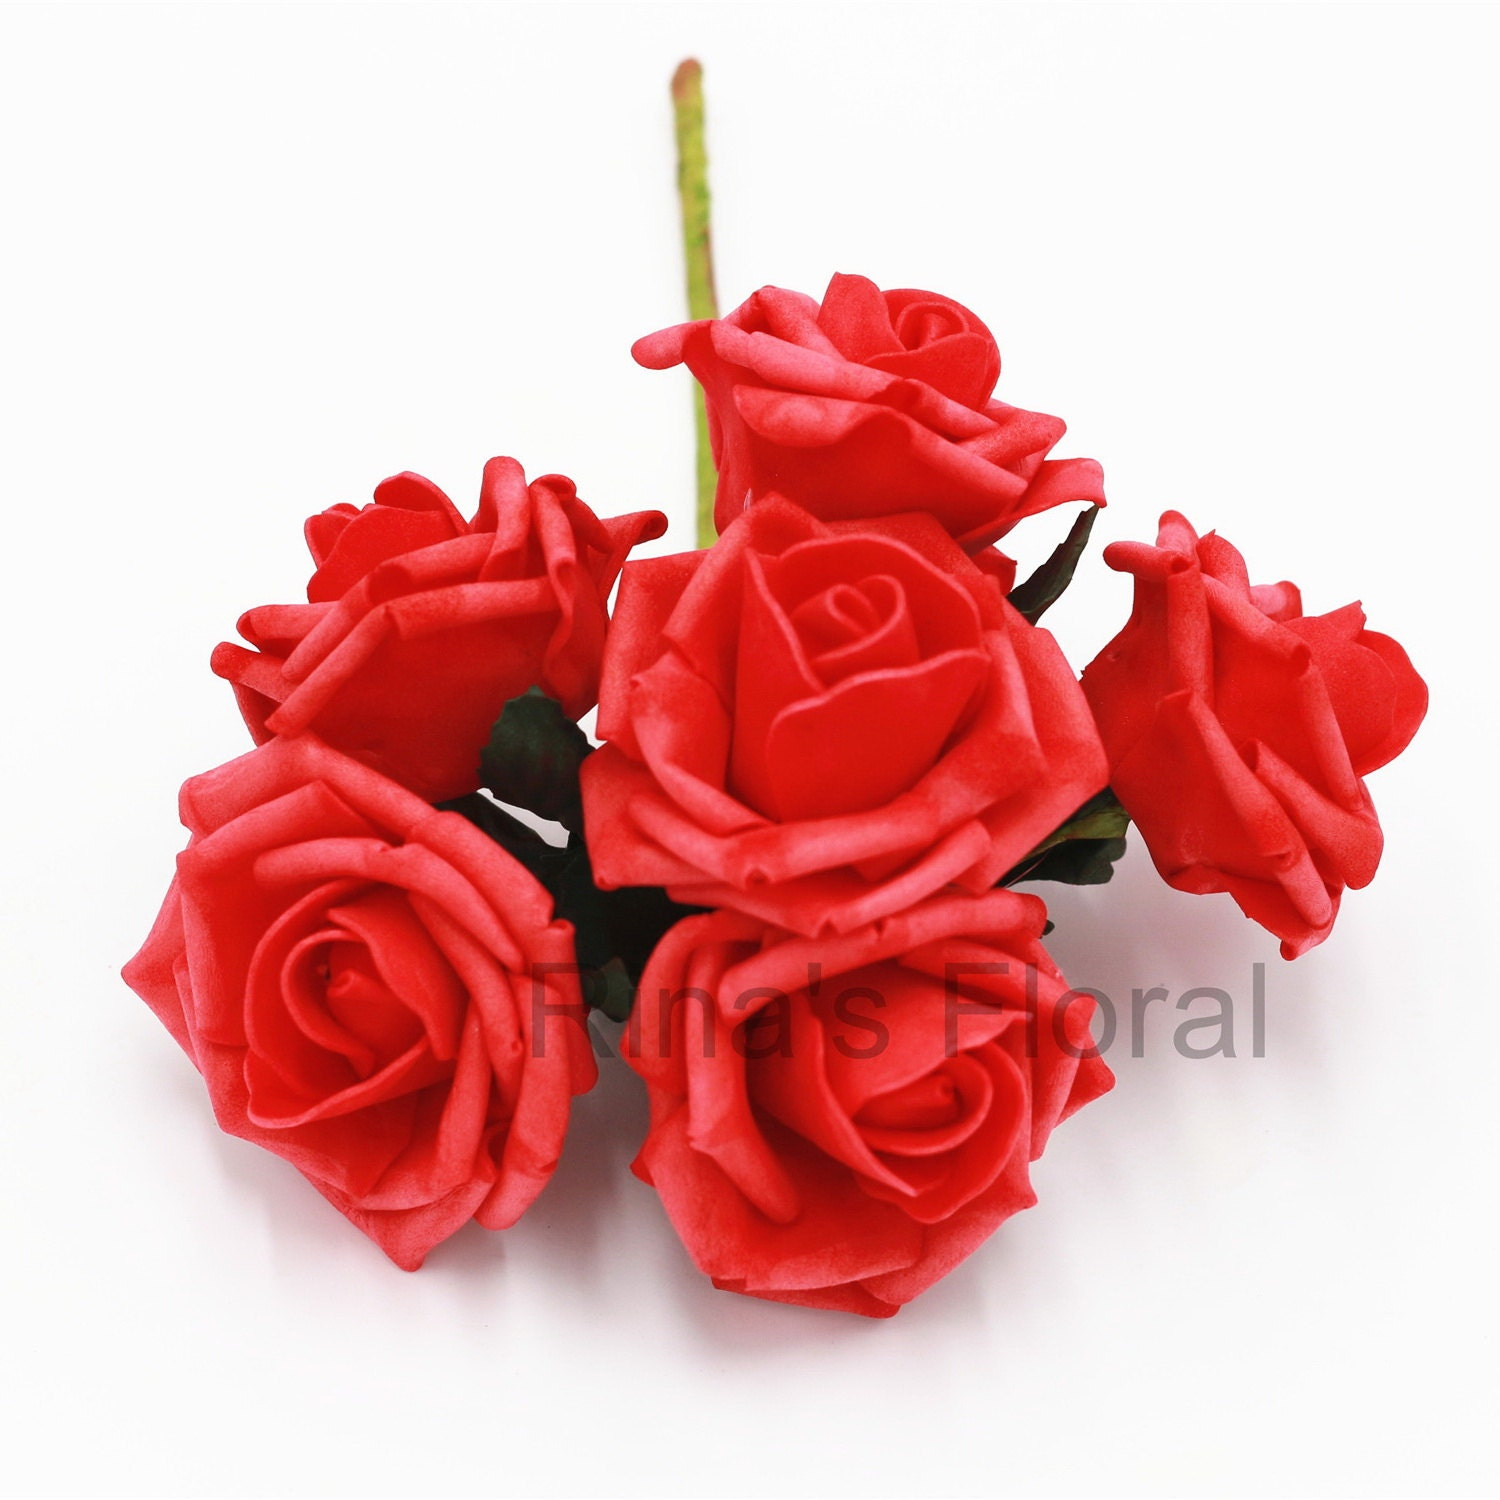 Red Roses Artificial Flowers Fake Wedding Flowers Red Bridal Etsy